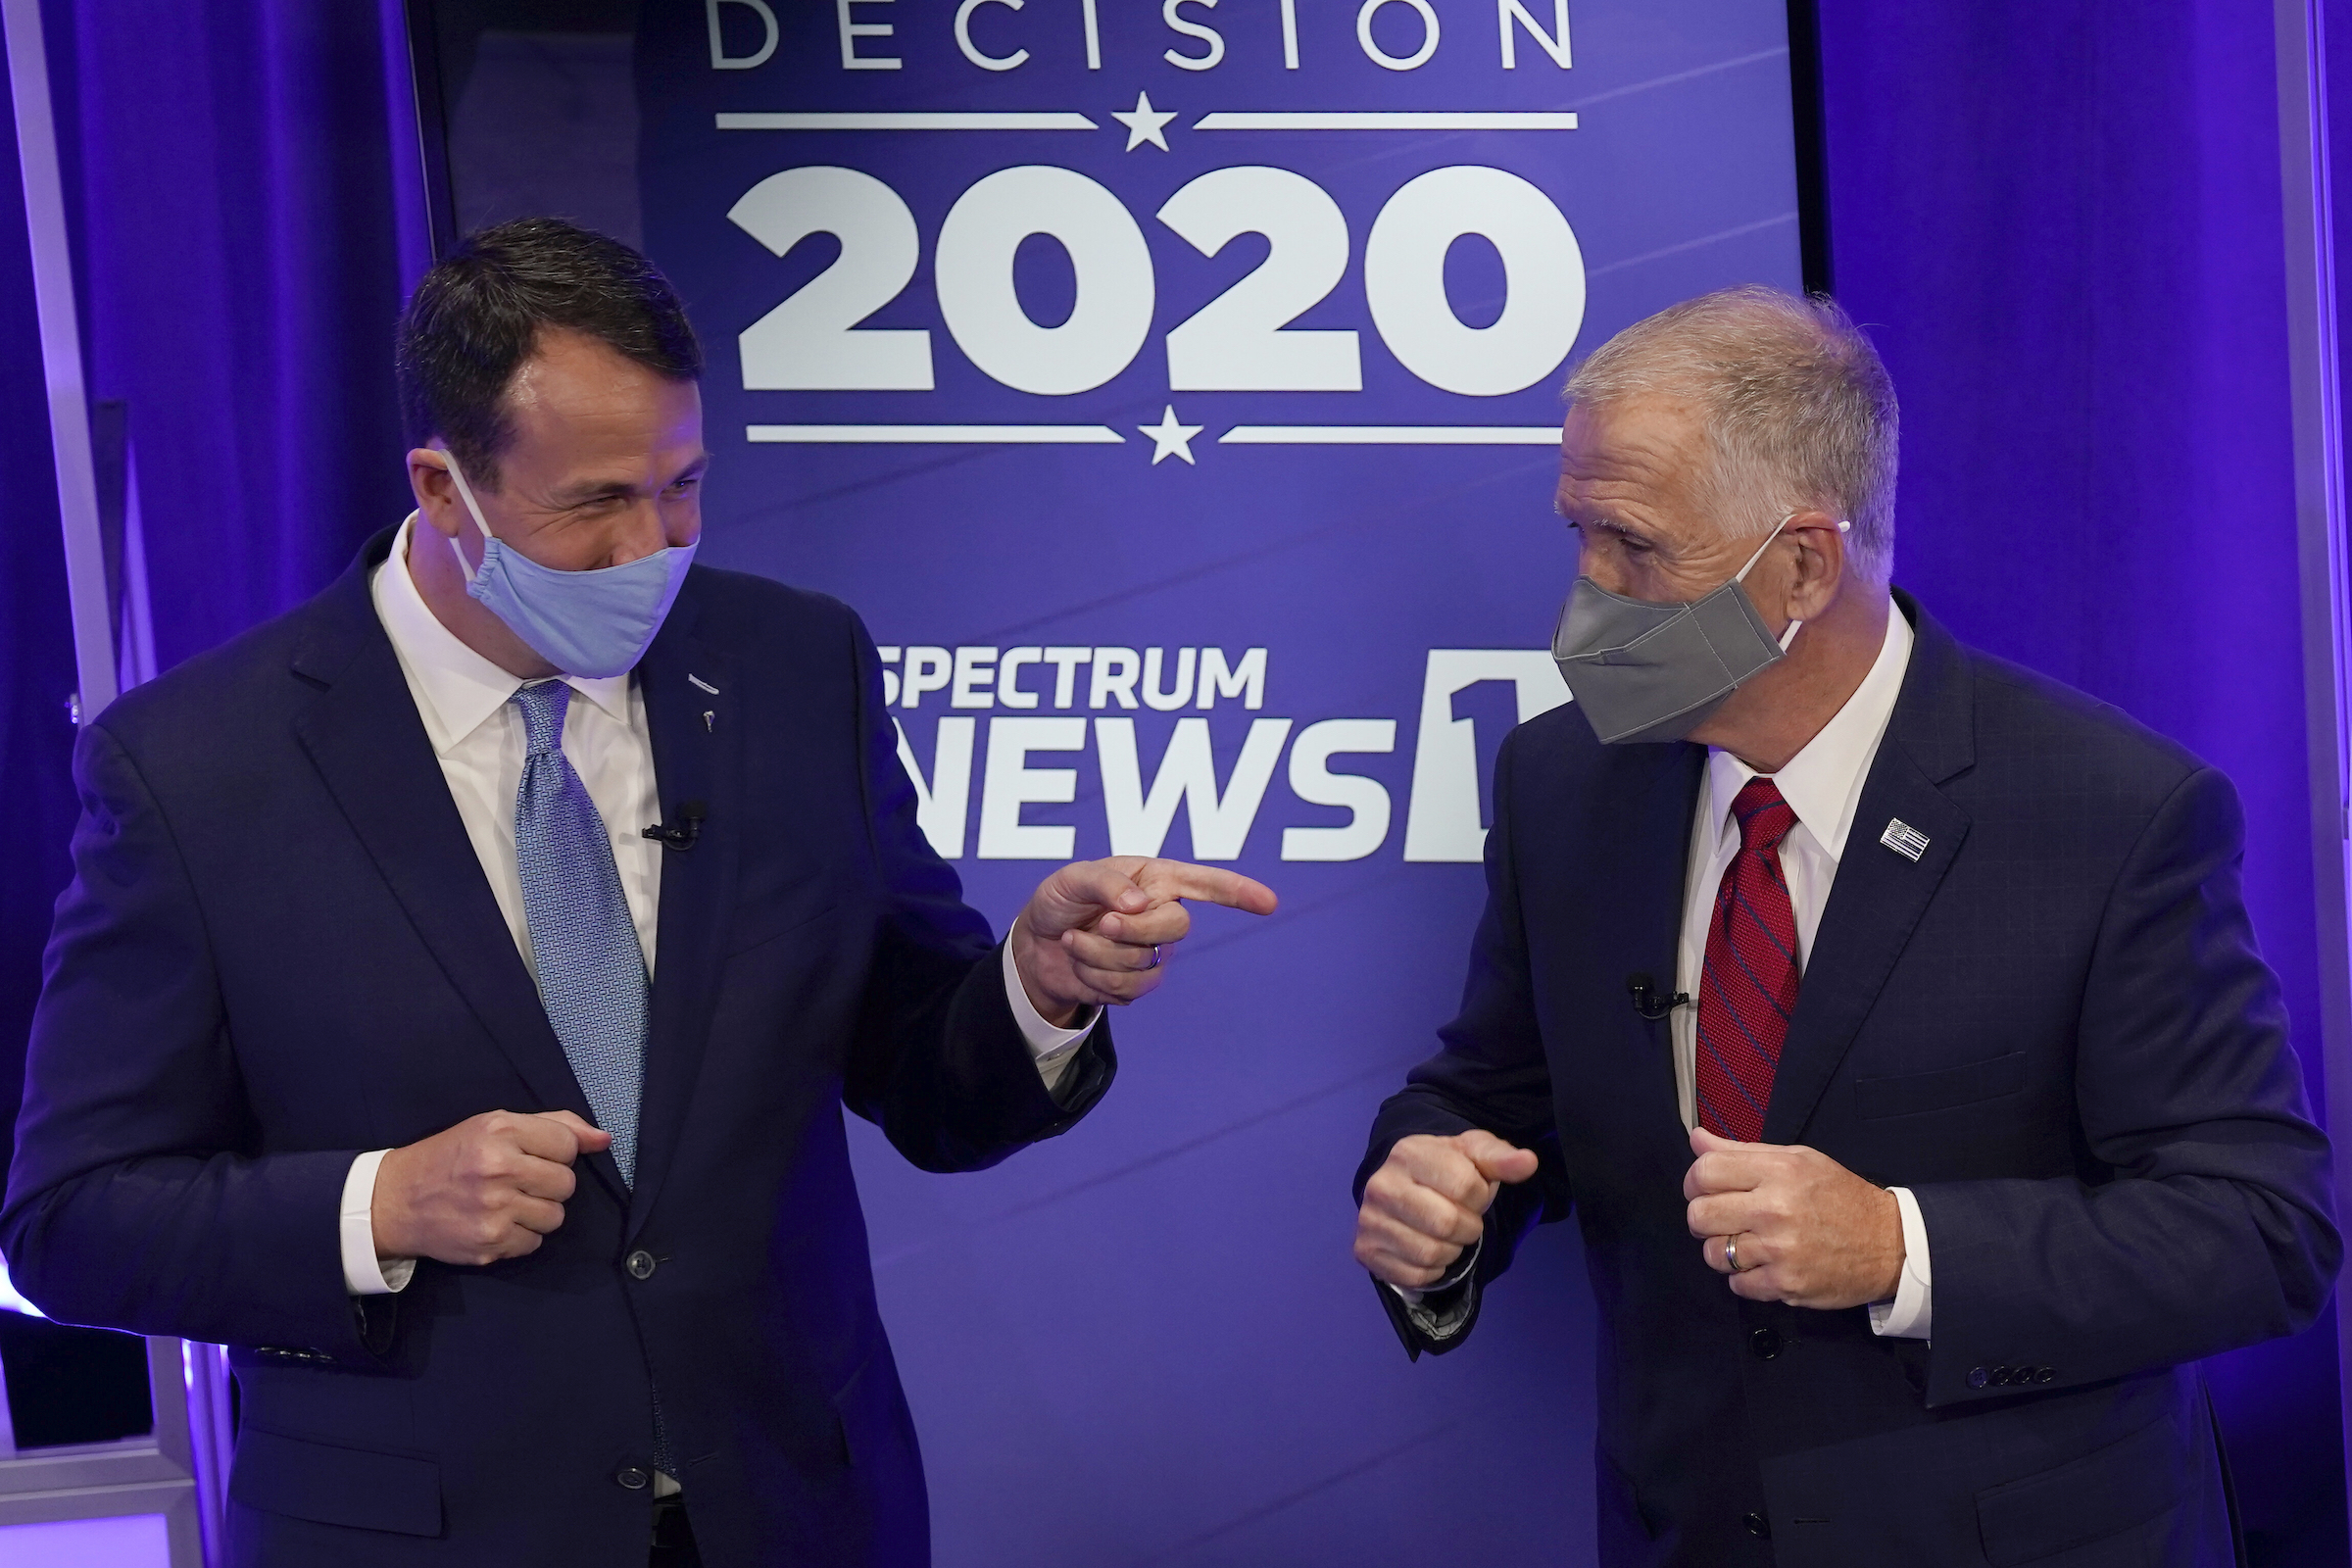 Democratic challenger Cal Cunningham, left, and  U.S. Sen. Thom Tillis, R-N.C. greet each other after a televised debate Thursday, Oct. 1, 2020 in Raleigh, N.C.